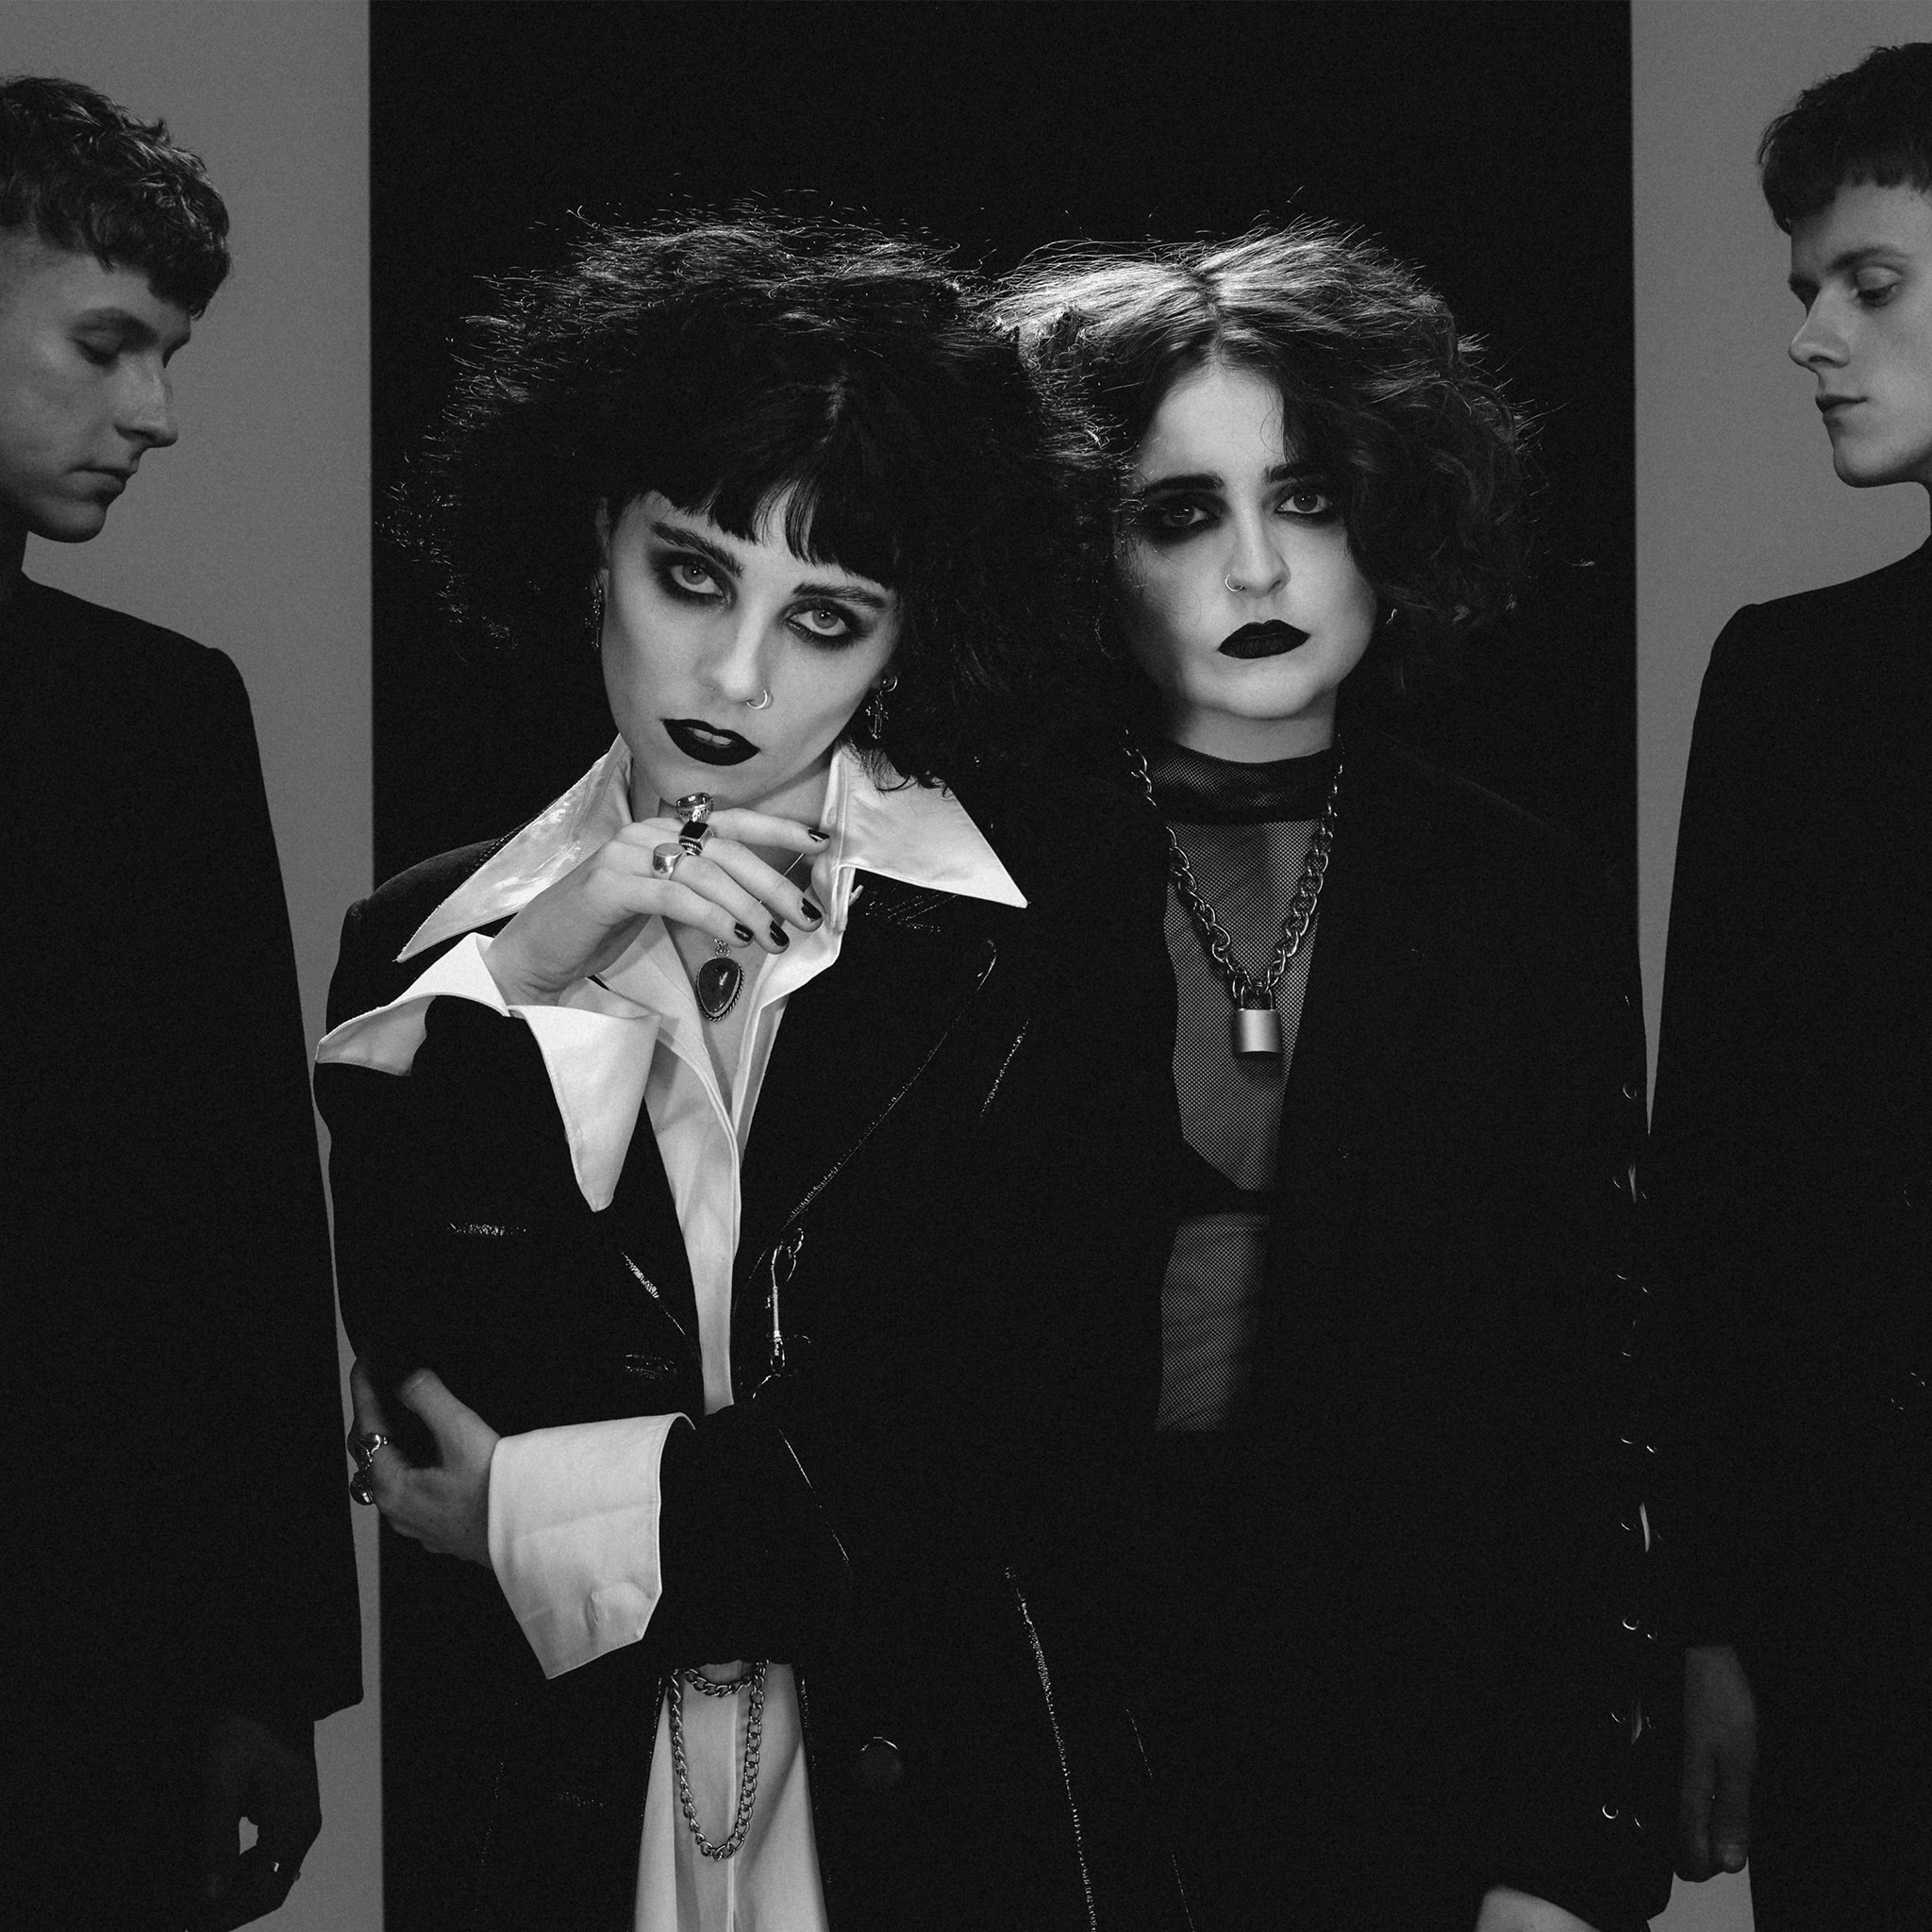 INTERVIEW: PALE WAVES